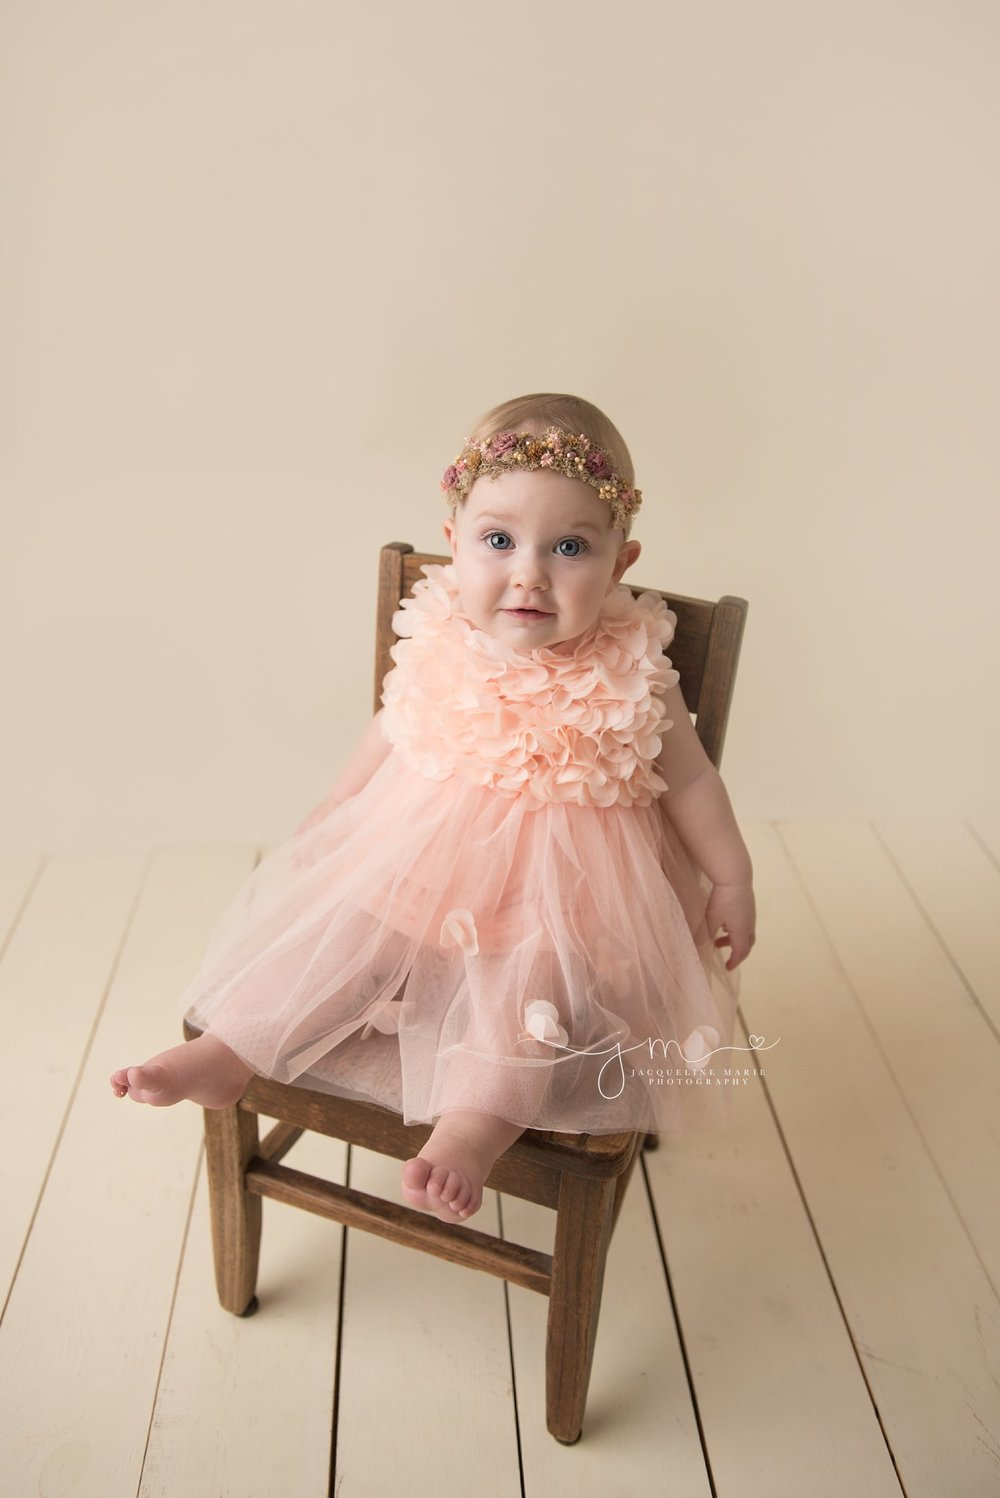 columbus ohio first birthday and baby photographer features image of baby girl in a wood chair wearing a pink dress